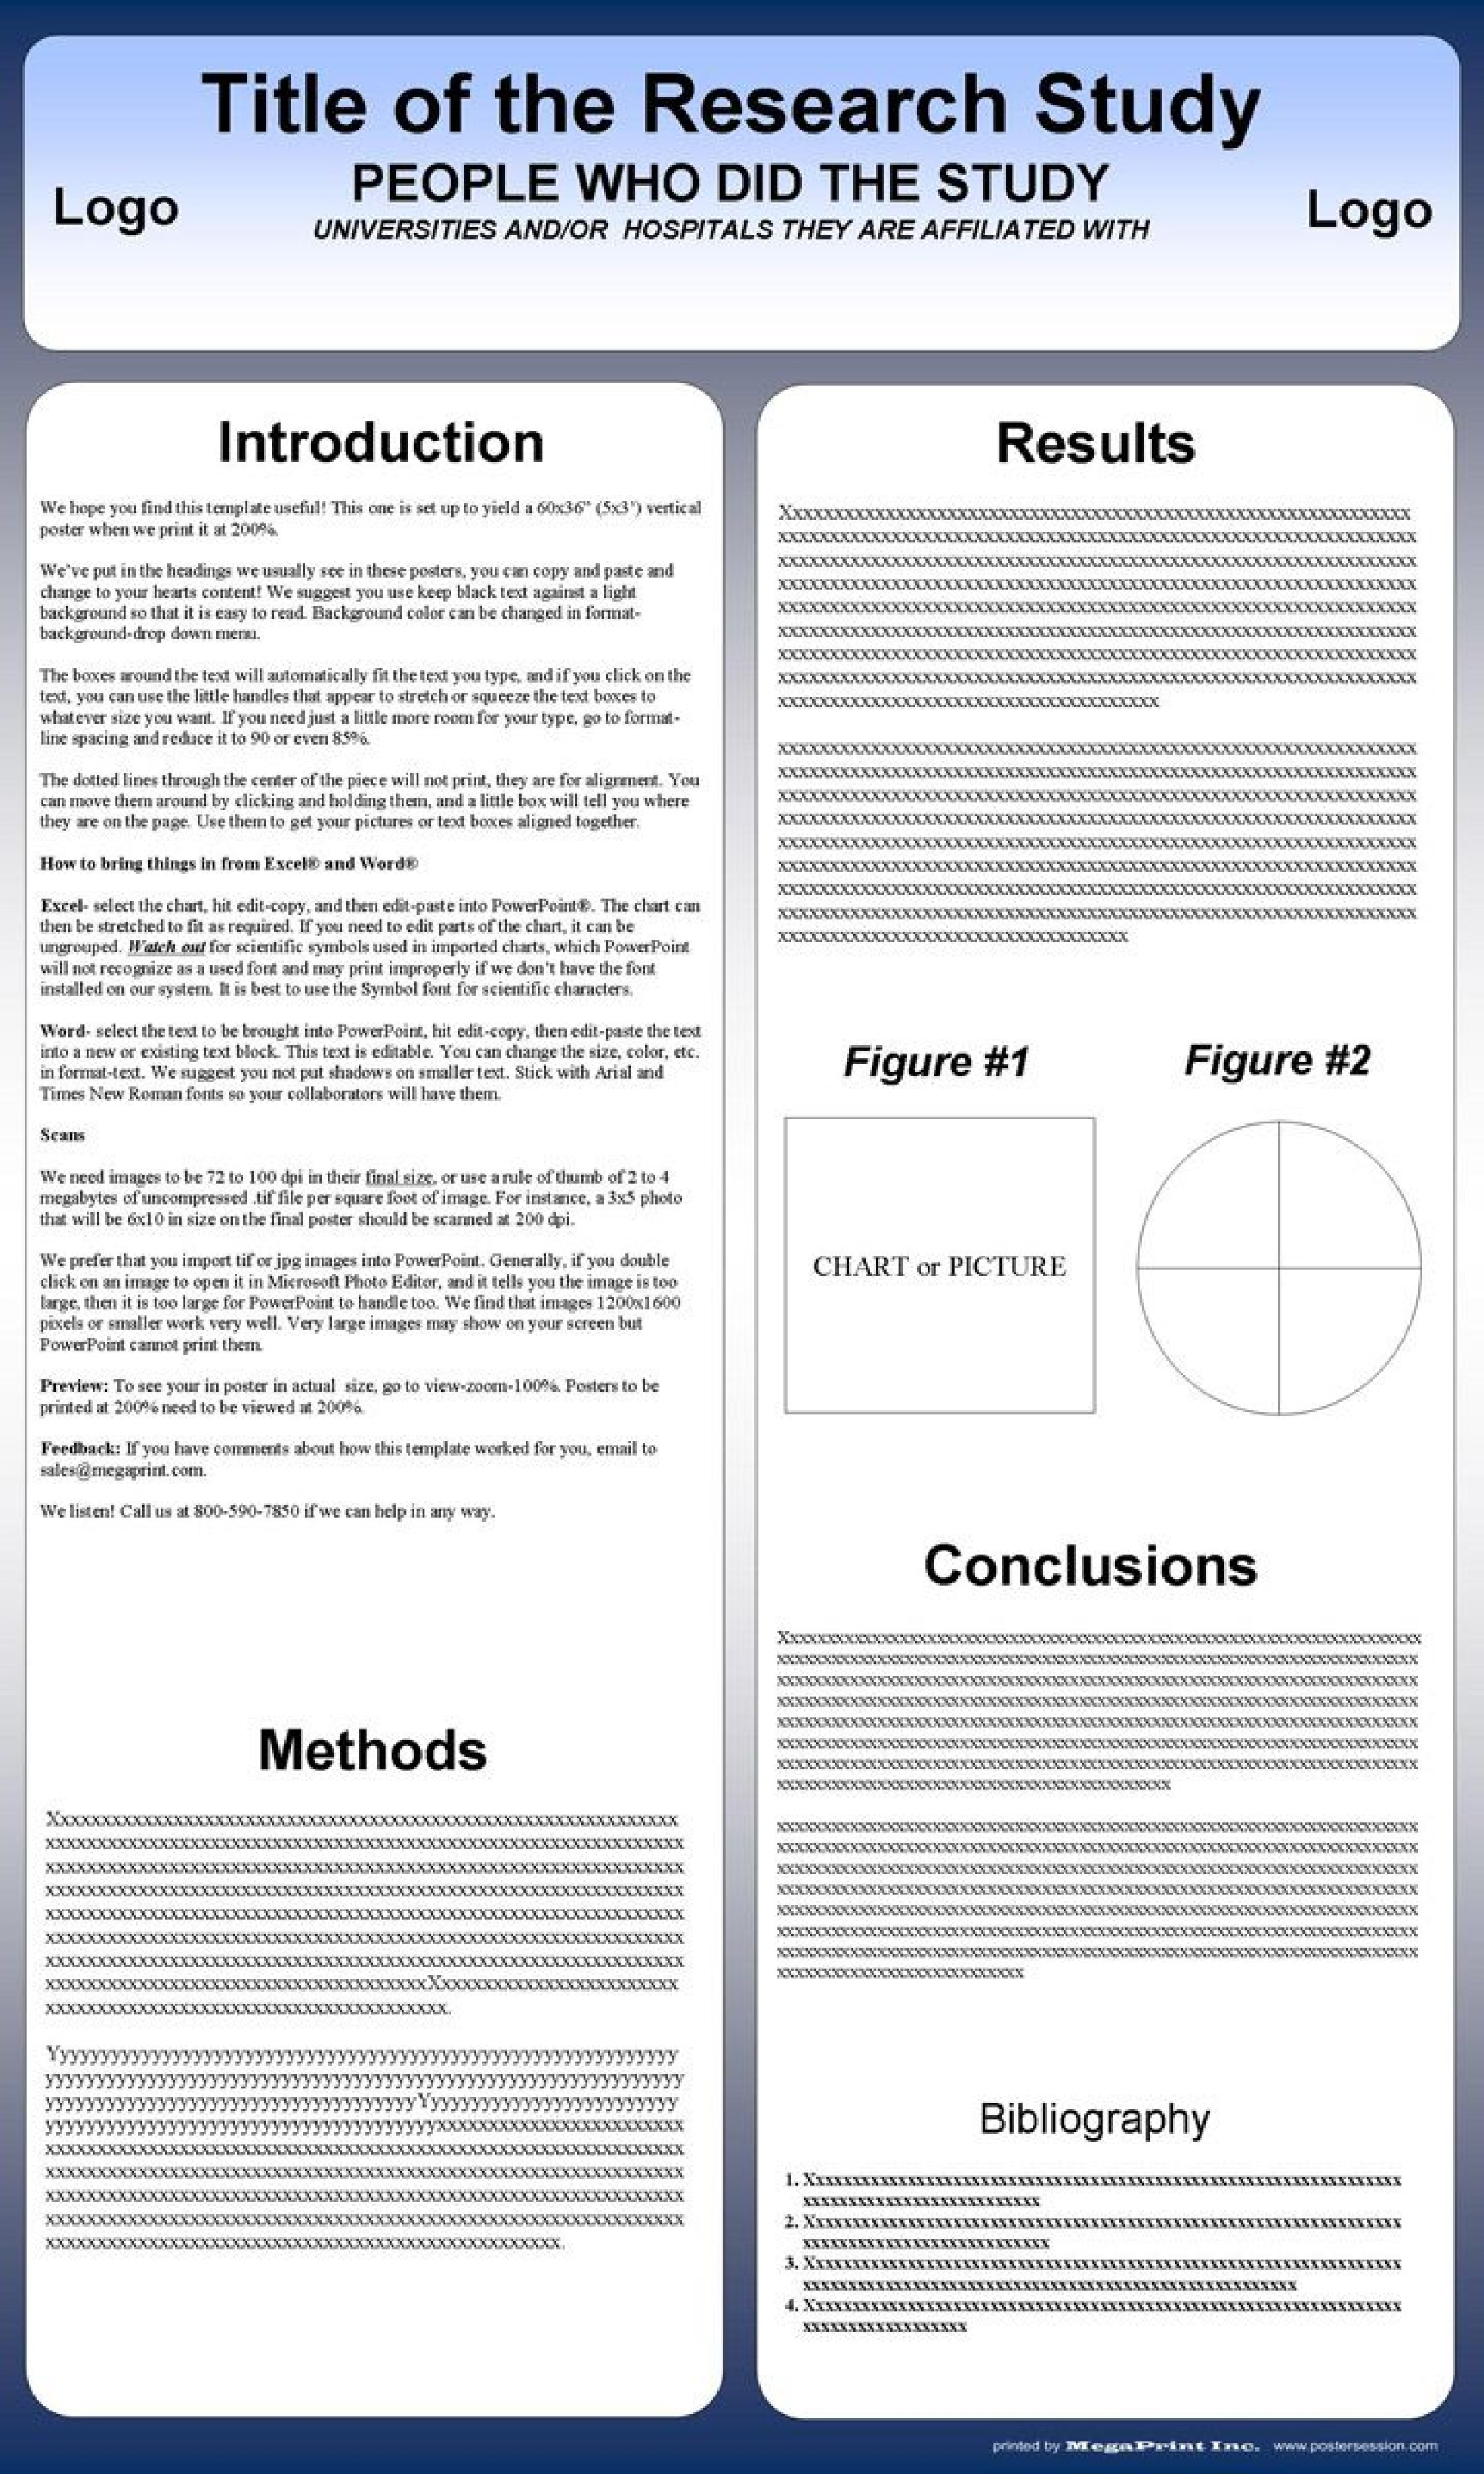 001 Incredible Scientific Poster Template A1 Free Download Example 1920